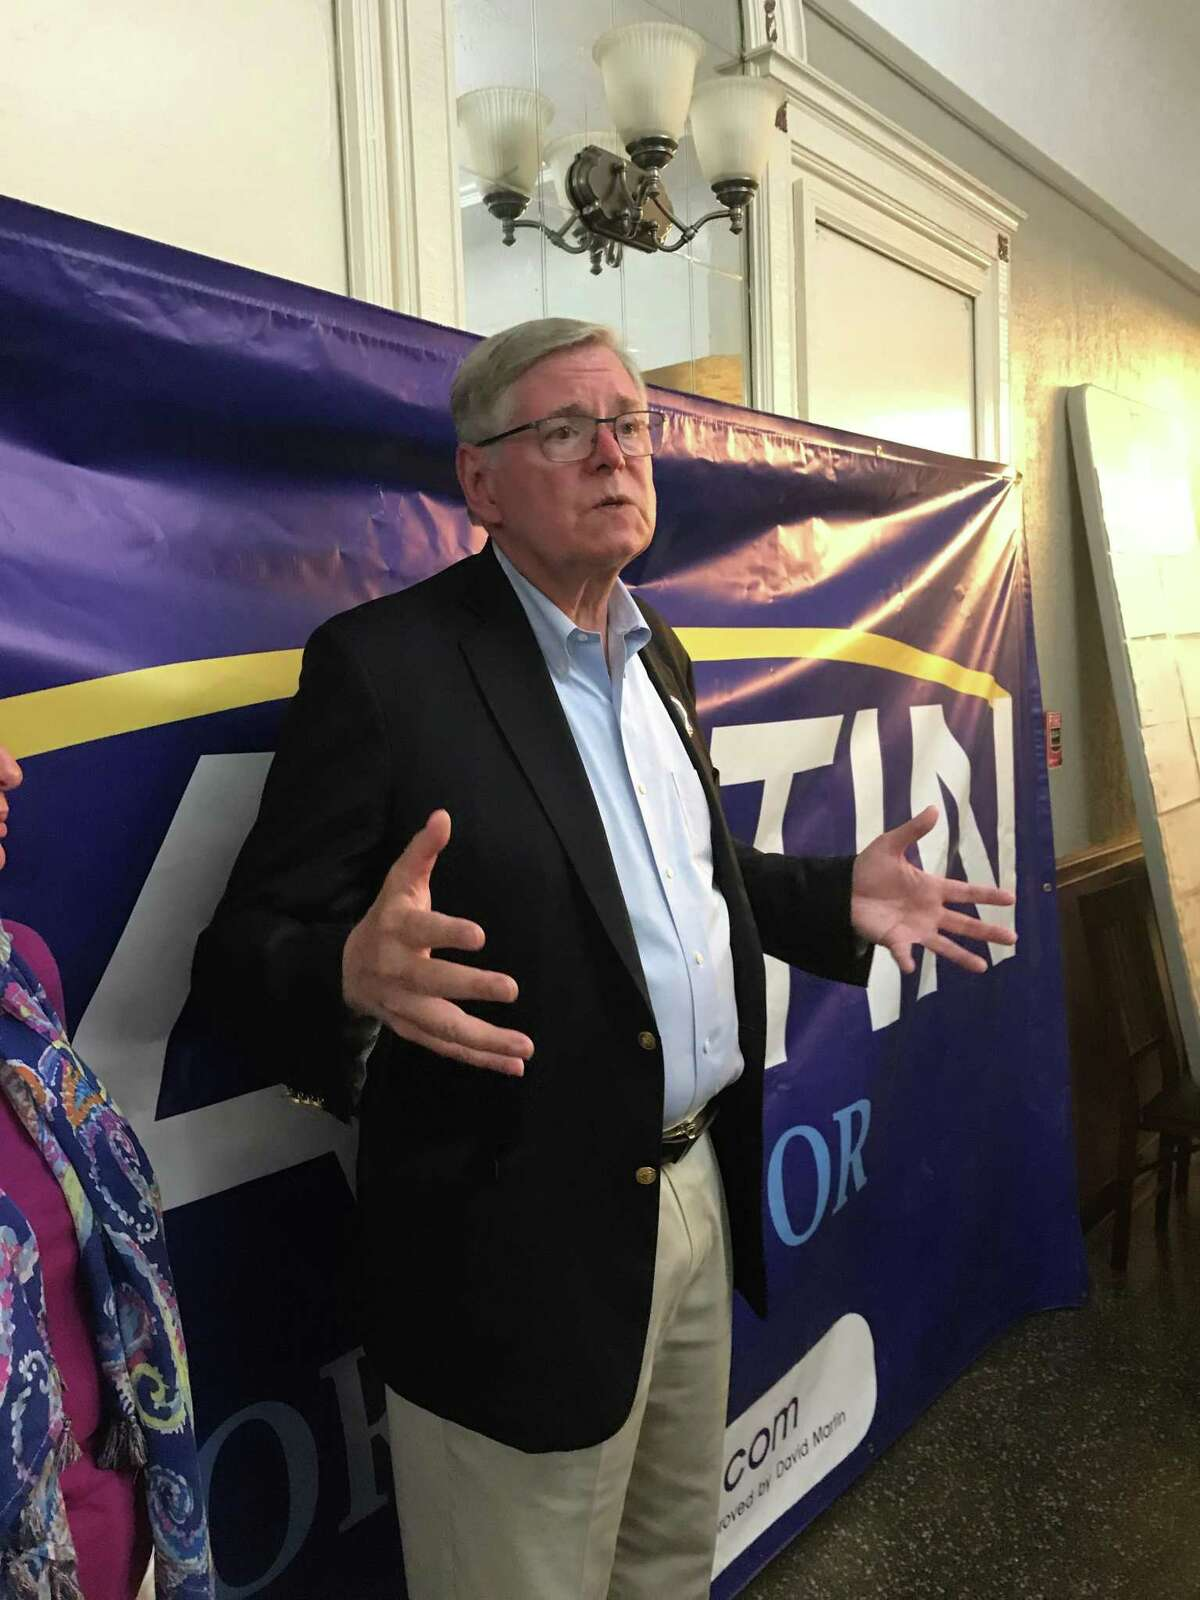 Mayor David Martin speaks to supporters at his campaign headquarters Tuesday, Sept. 14, 2021, after he conceded in the Democratic mayoral primary.